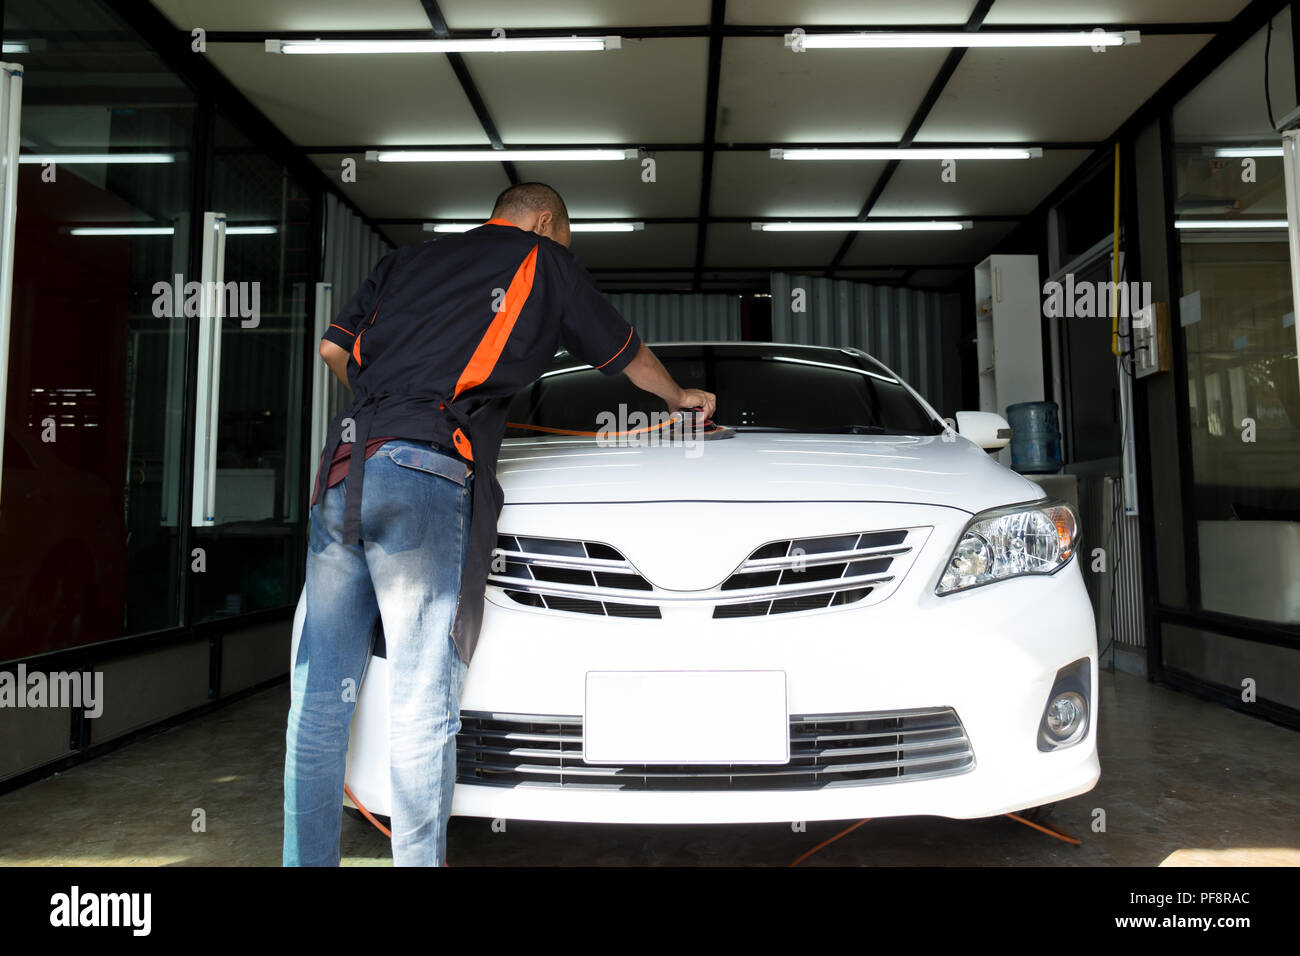 Car care worker polishing the white car  - Stock Image